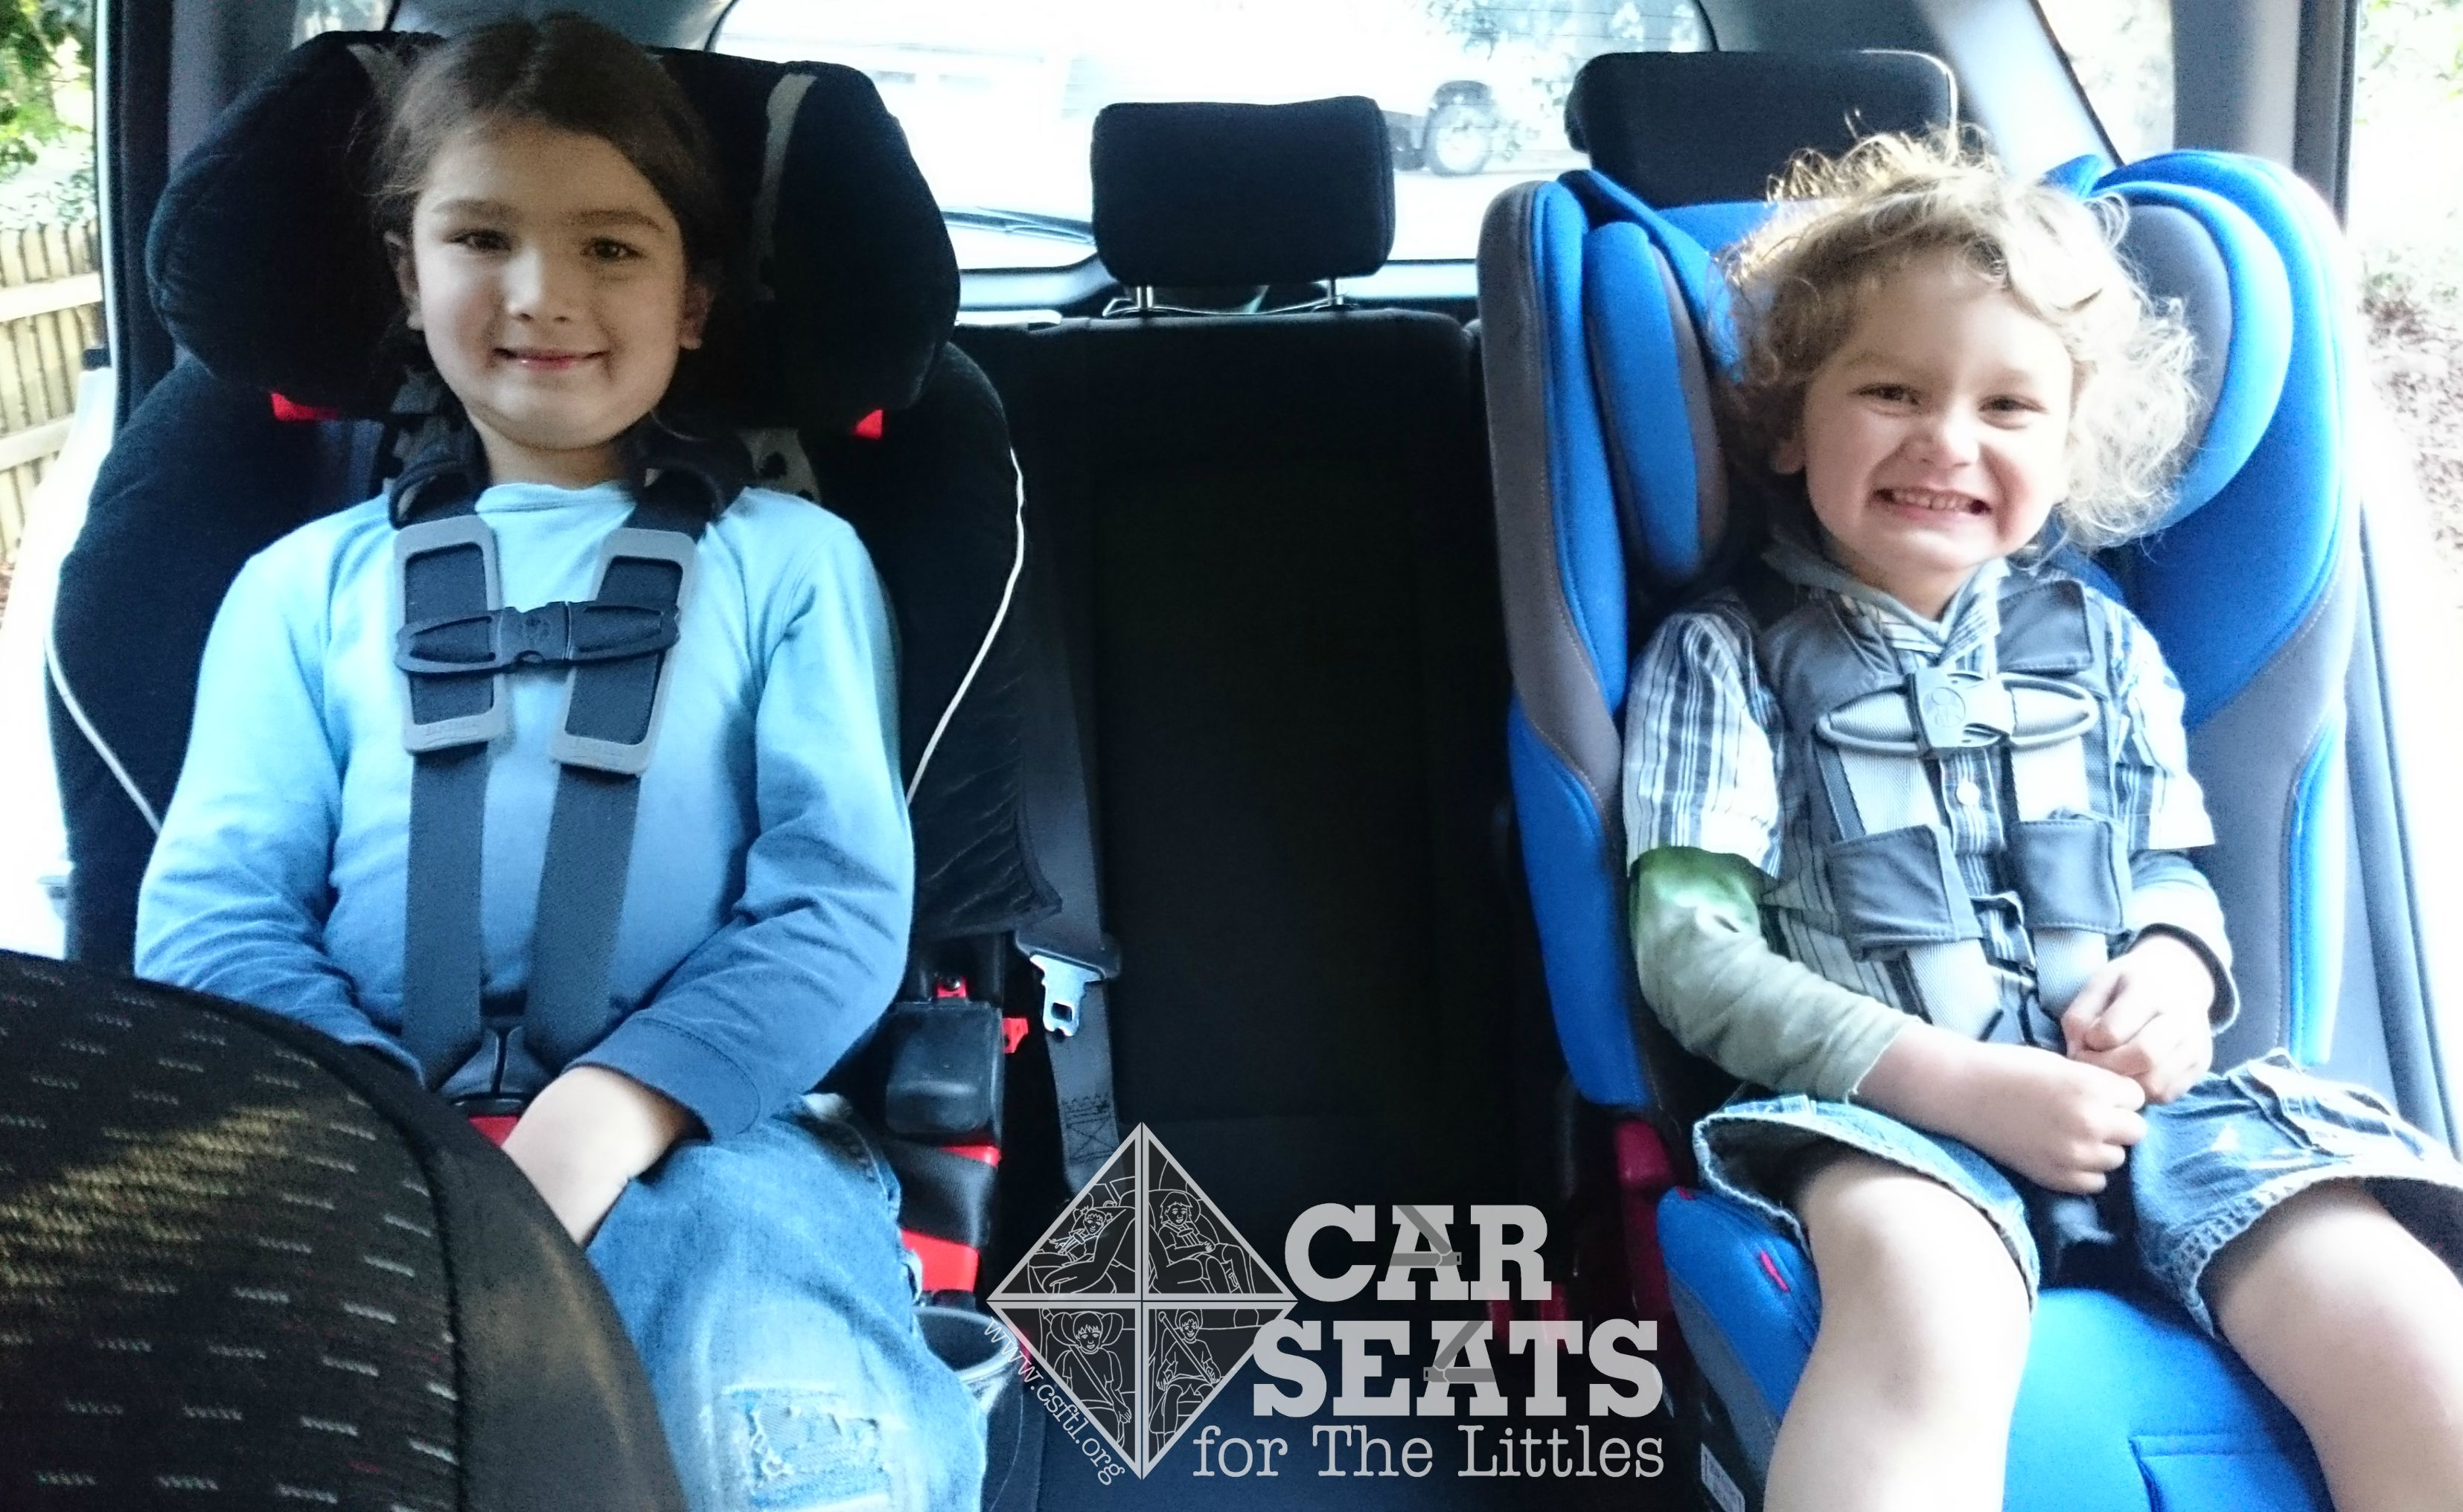 The Safest Seat Car Seats For The Littles